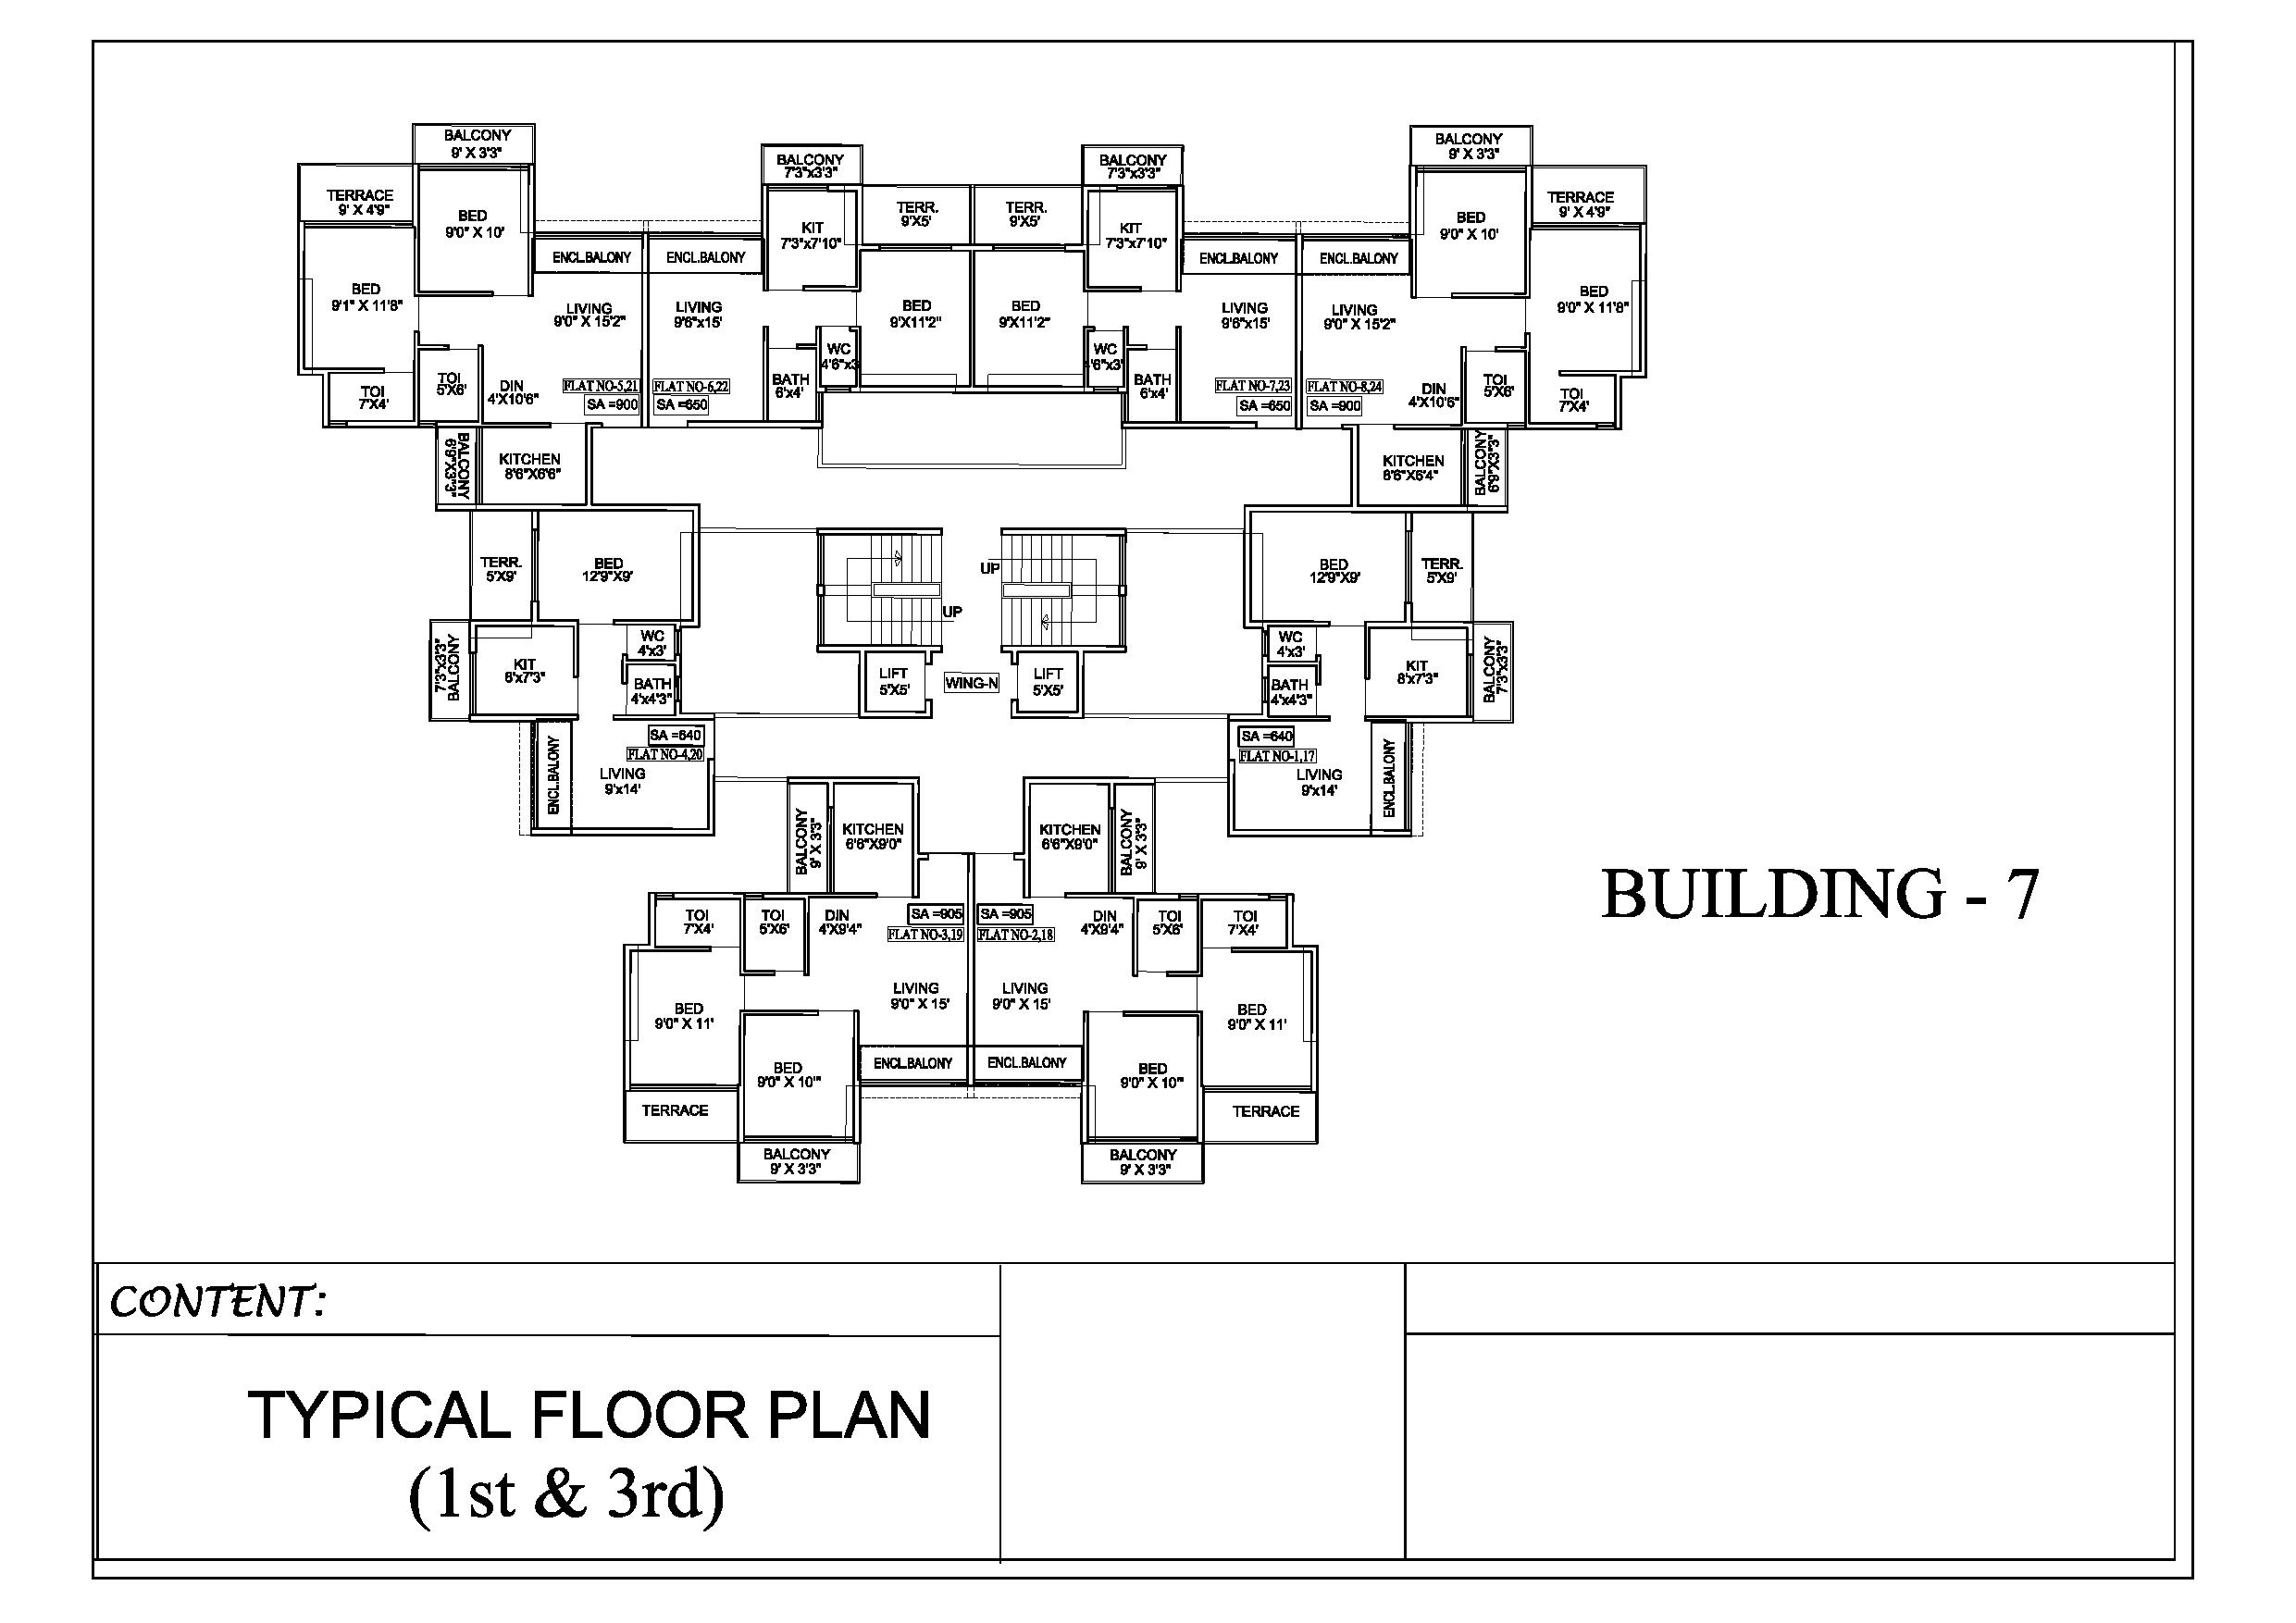 Typical Floor Plan A 1-3 Bldg. 7.jpg